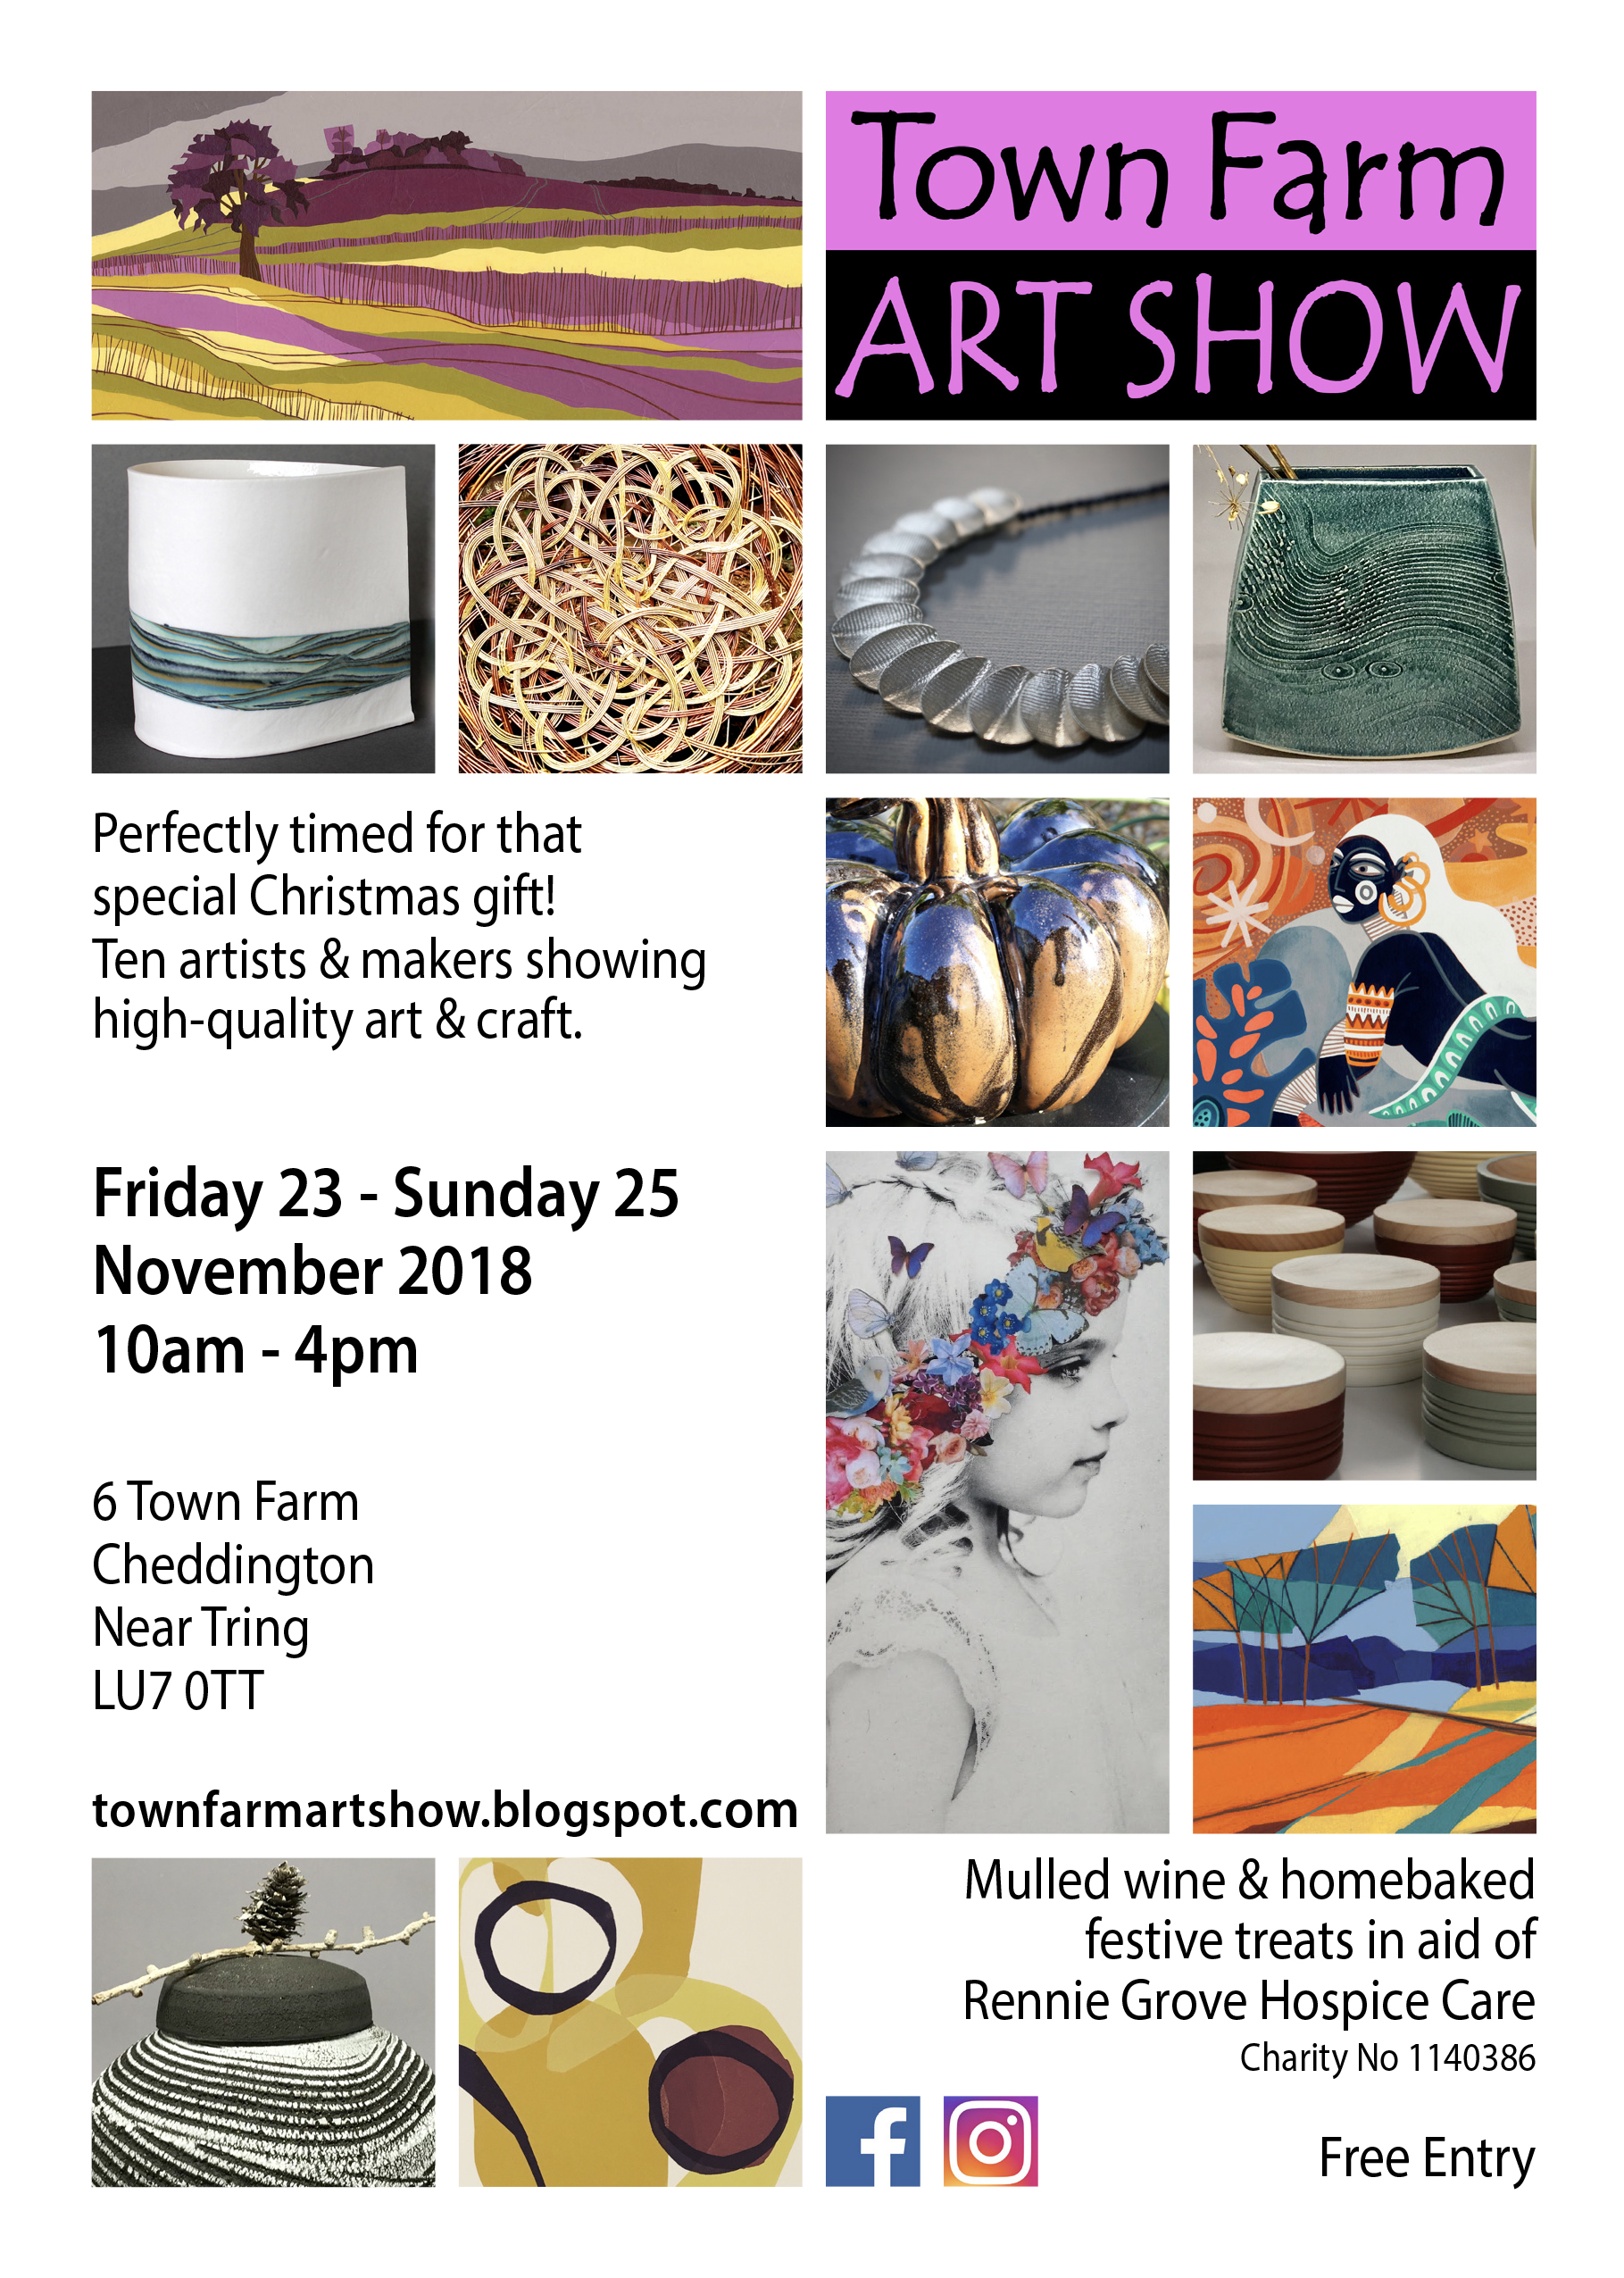 23 - 25 Nov - Town Farm Art Show - Cheddington